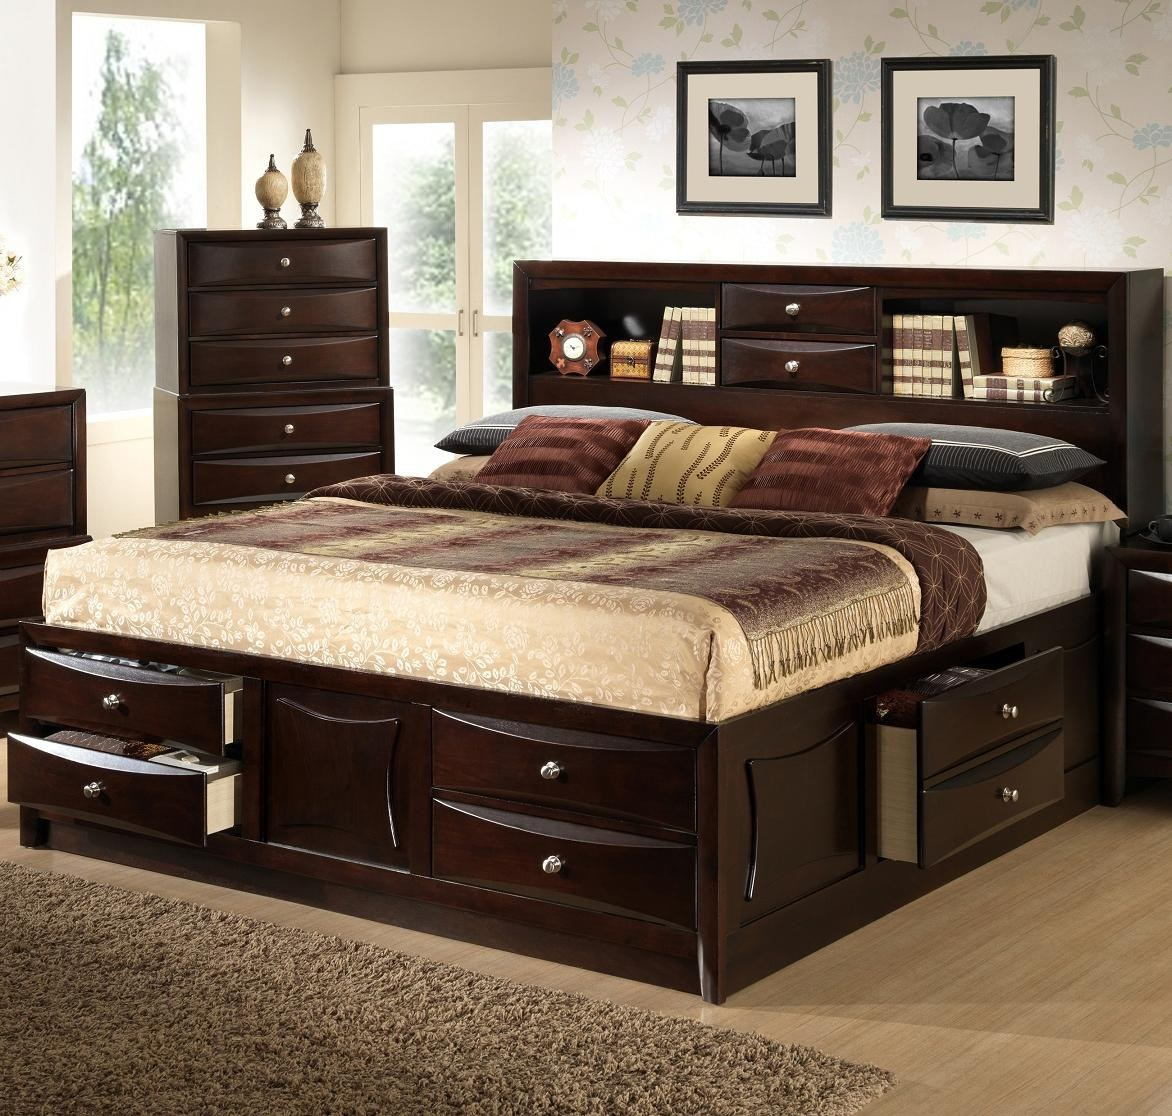 Lifestyle Toddqueen bookcase bed with storage space RWVDCKO